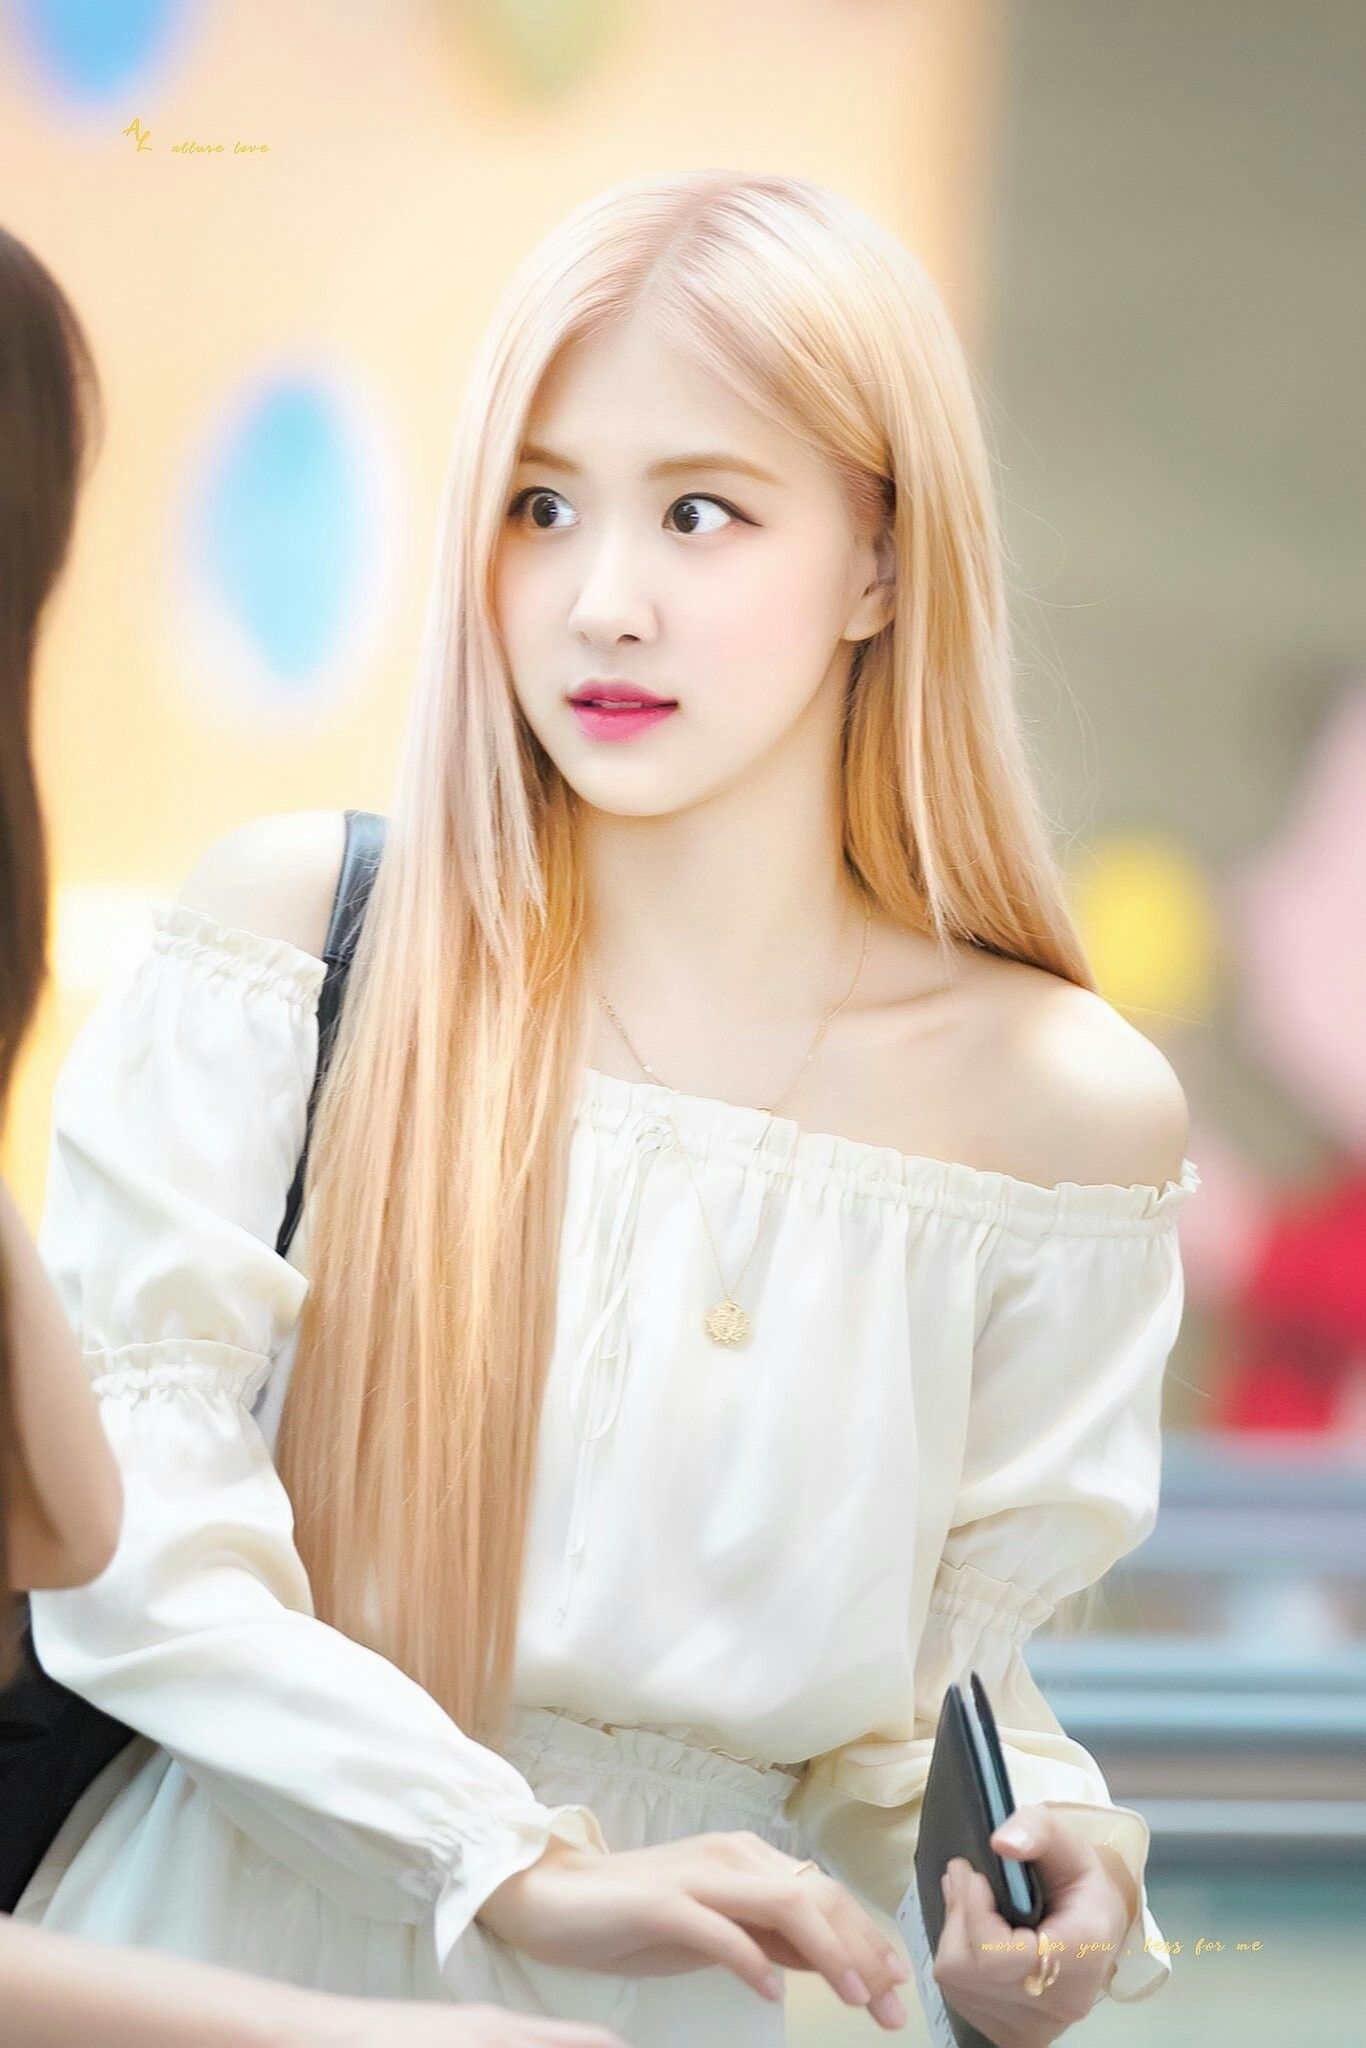 Pin by Jugu on Rose Blackpink Airport Style | Blackpink